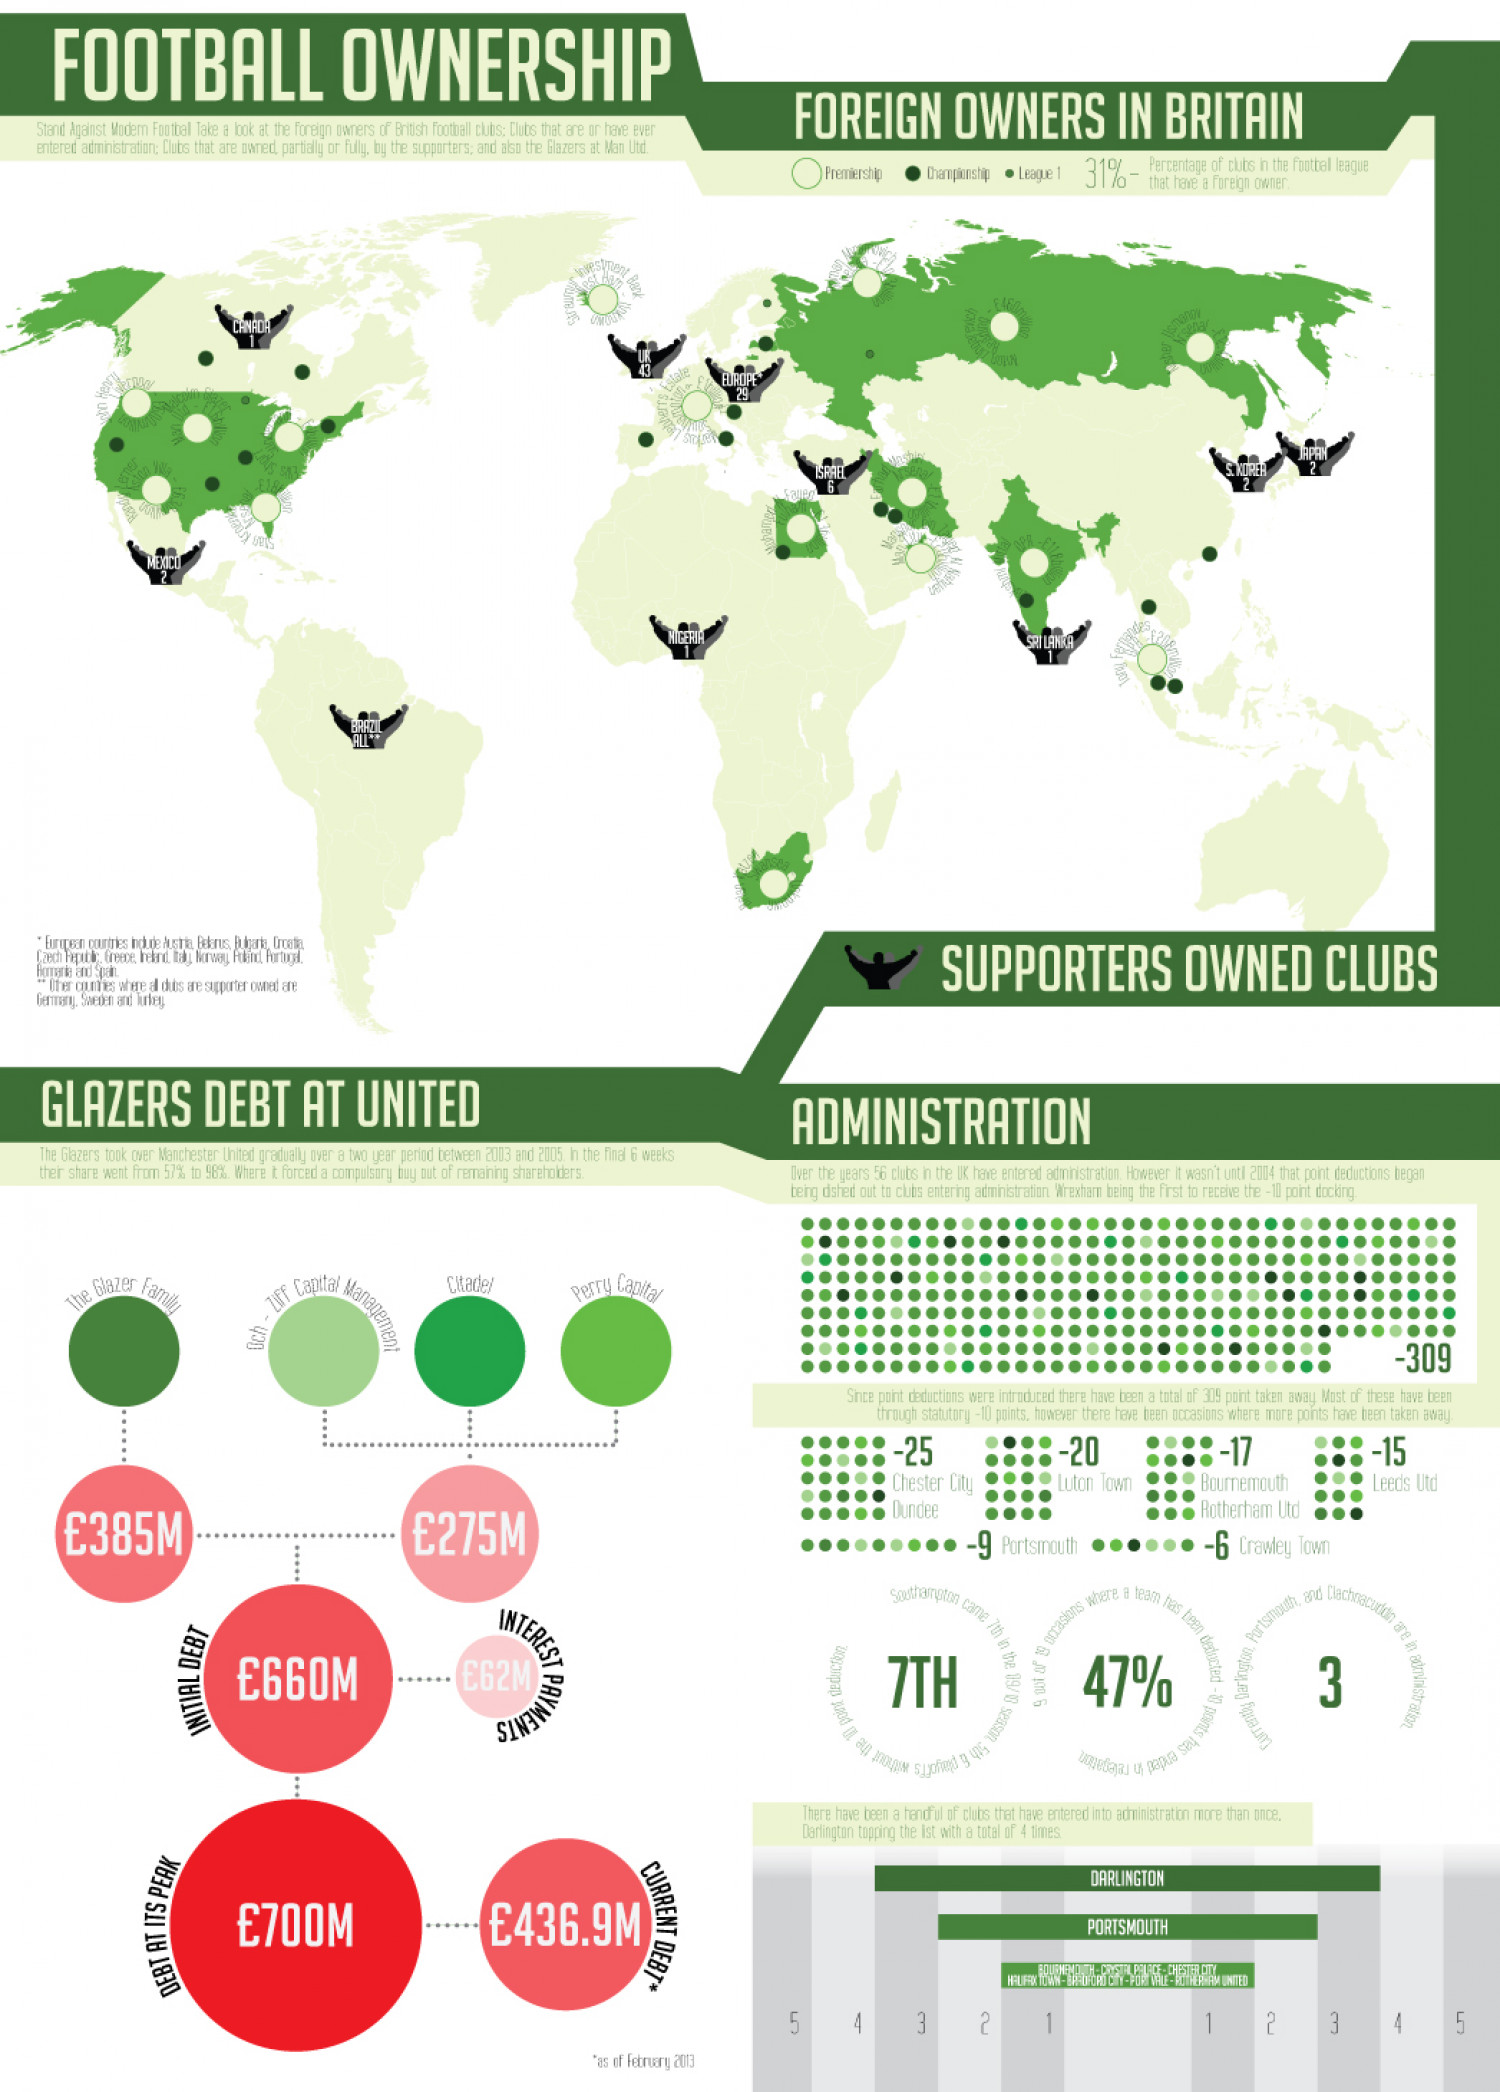 Foreign Owners in English Football Infographic